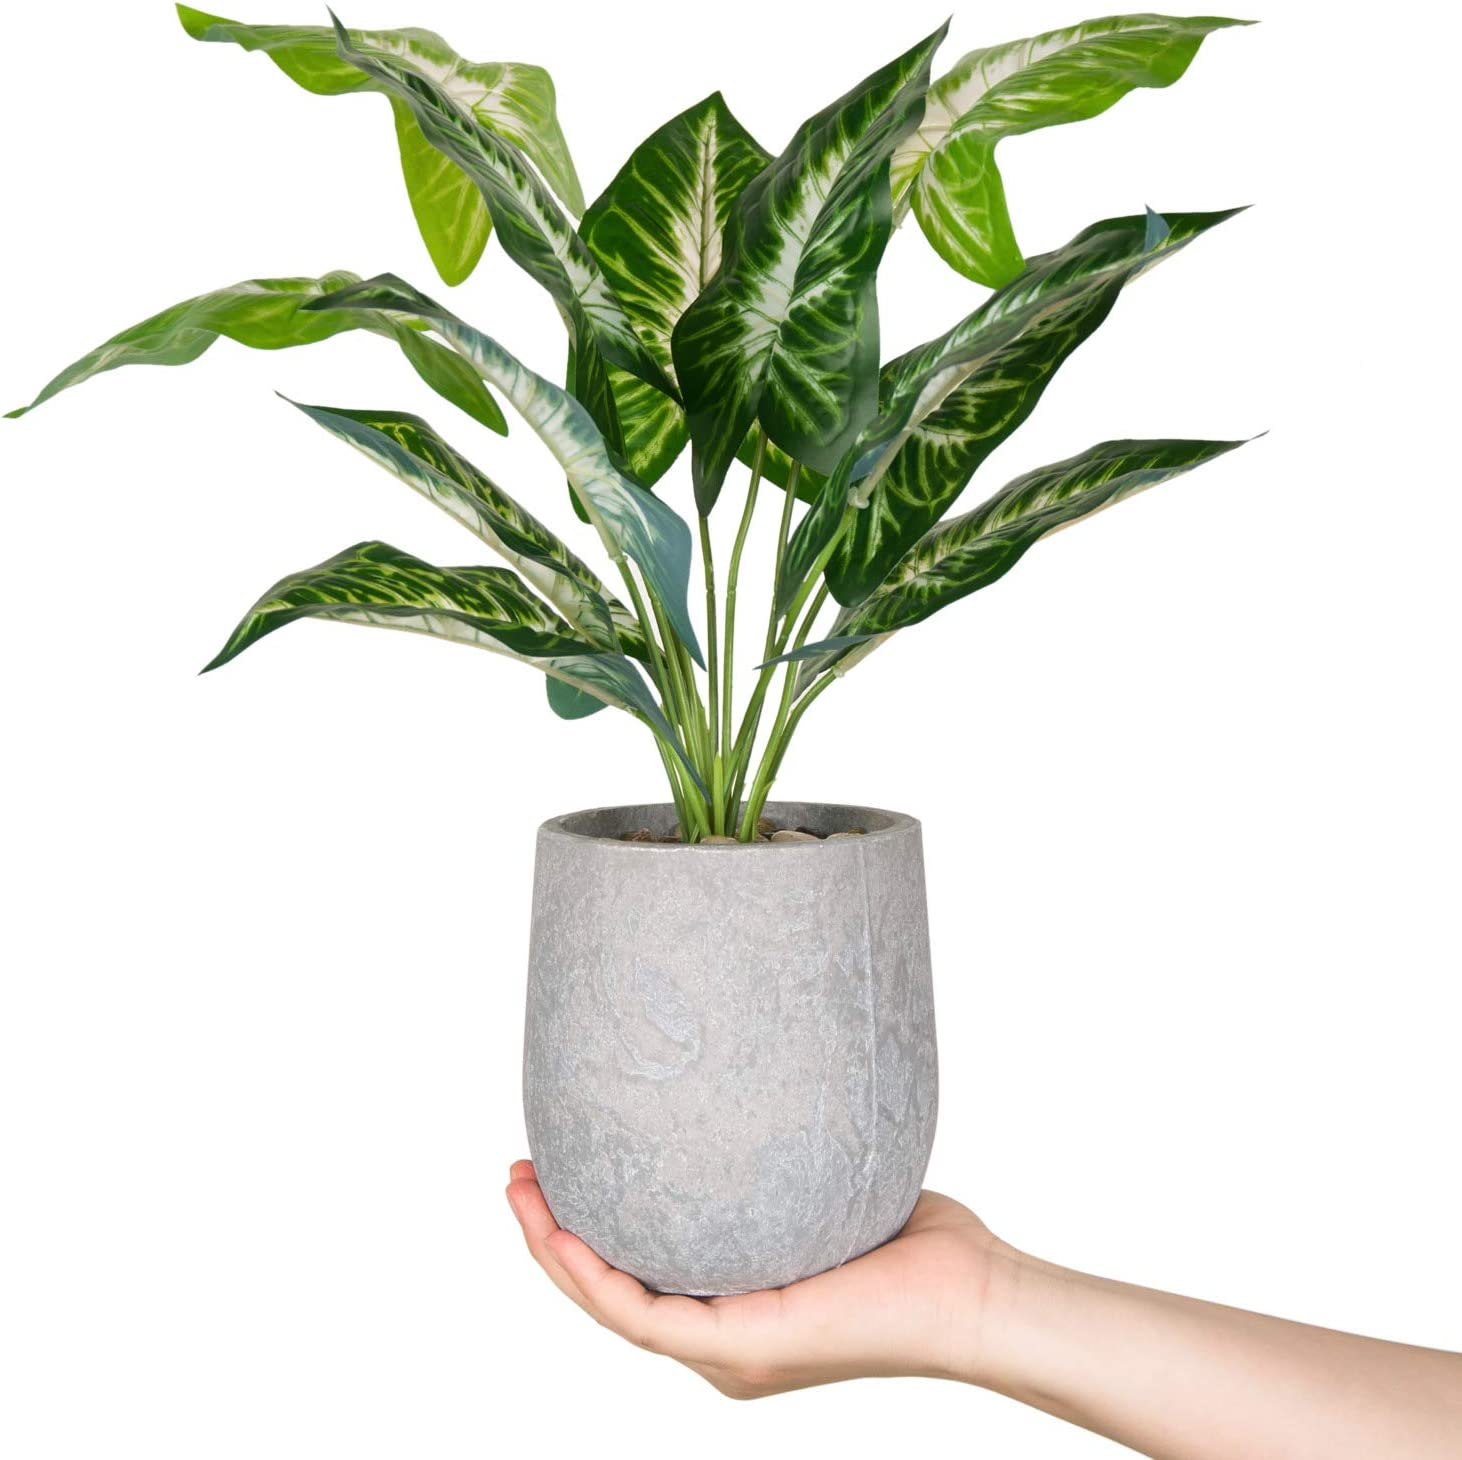 "18"" Small Fake Plants Artificial Potted Greenery Plant for Office Desk Home Bathroom Decor"